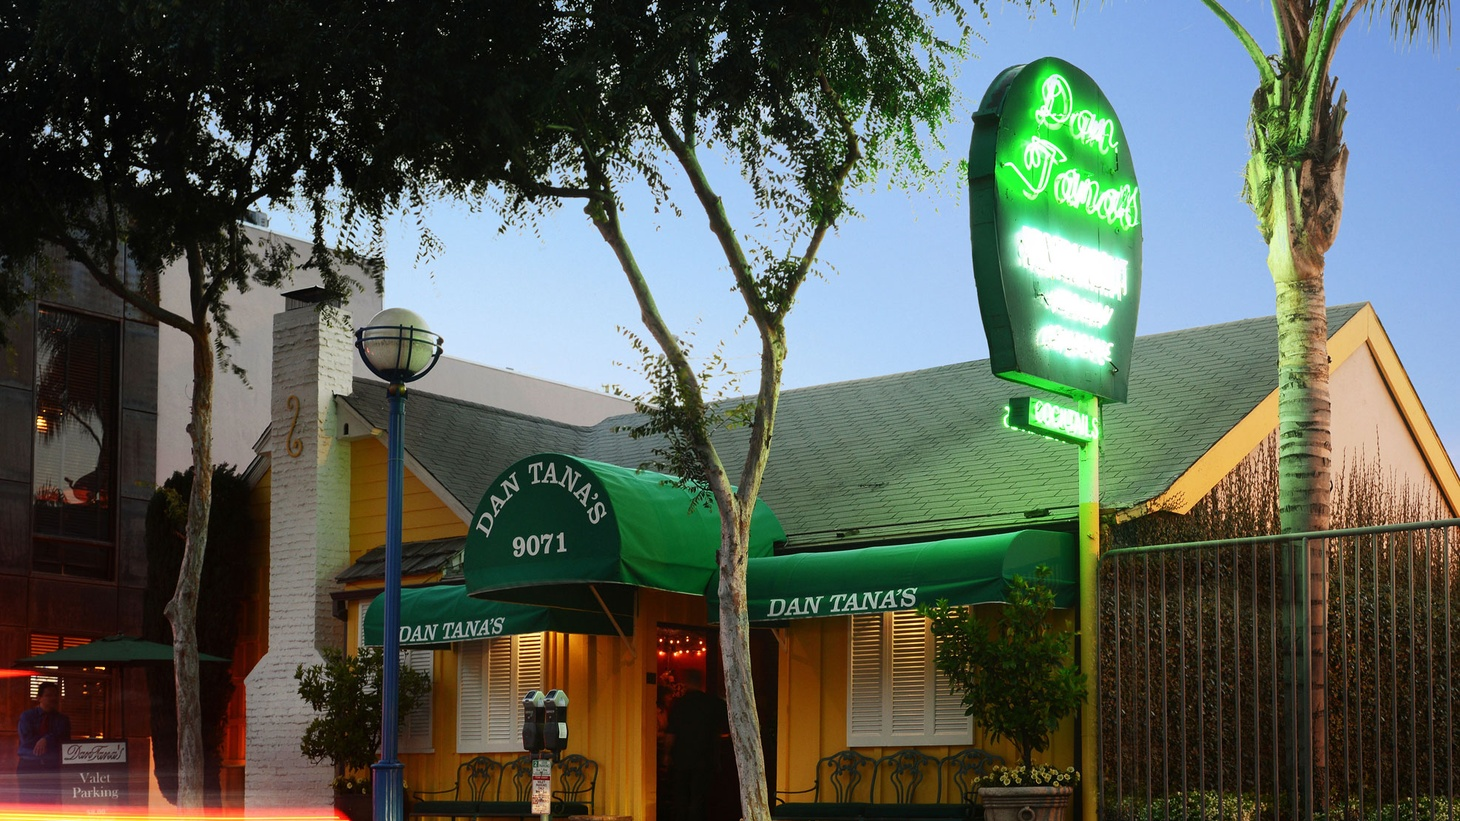 This week, our favorite food critic Jonathan Gold revisits Dan Tana's for the first time since high school, when a date at the iconic West Hollywood eatery went horribly wrong.